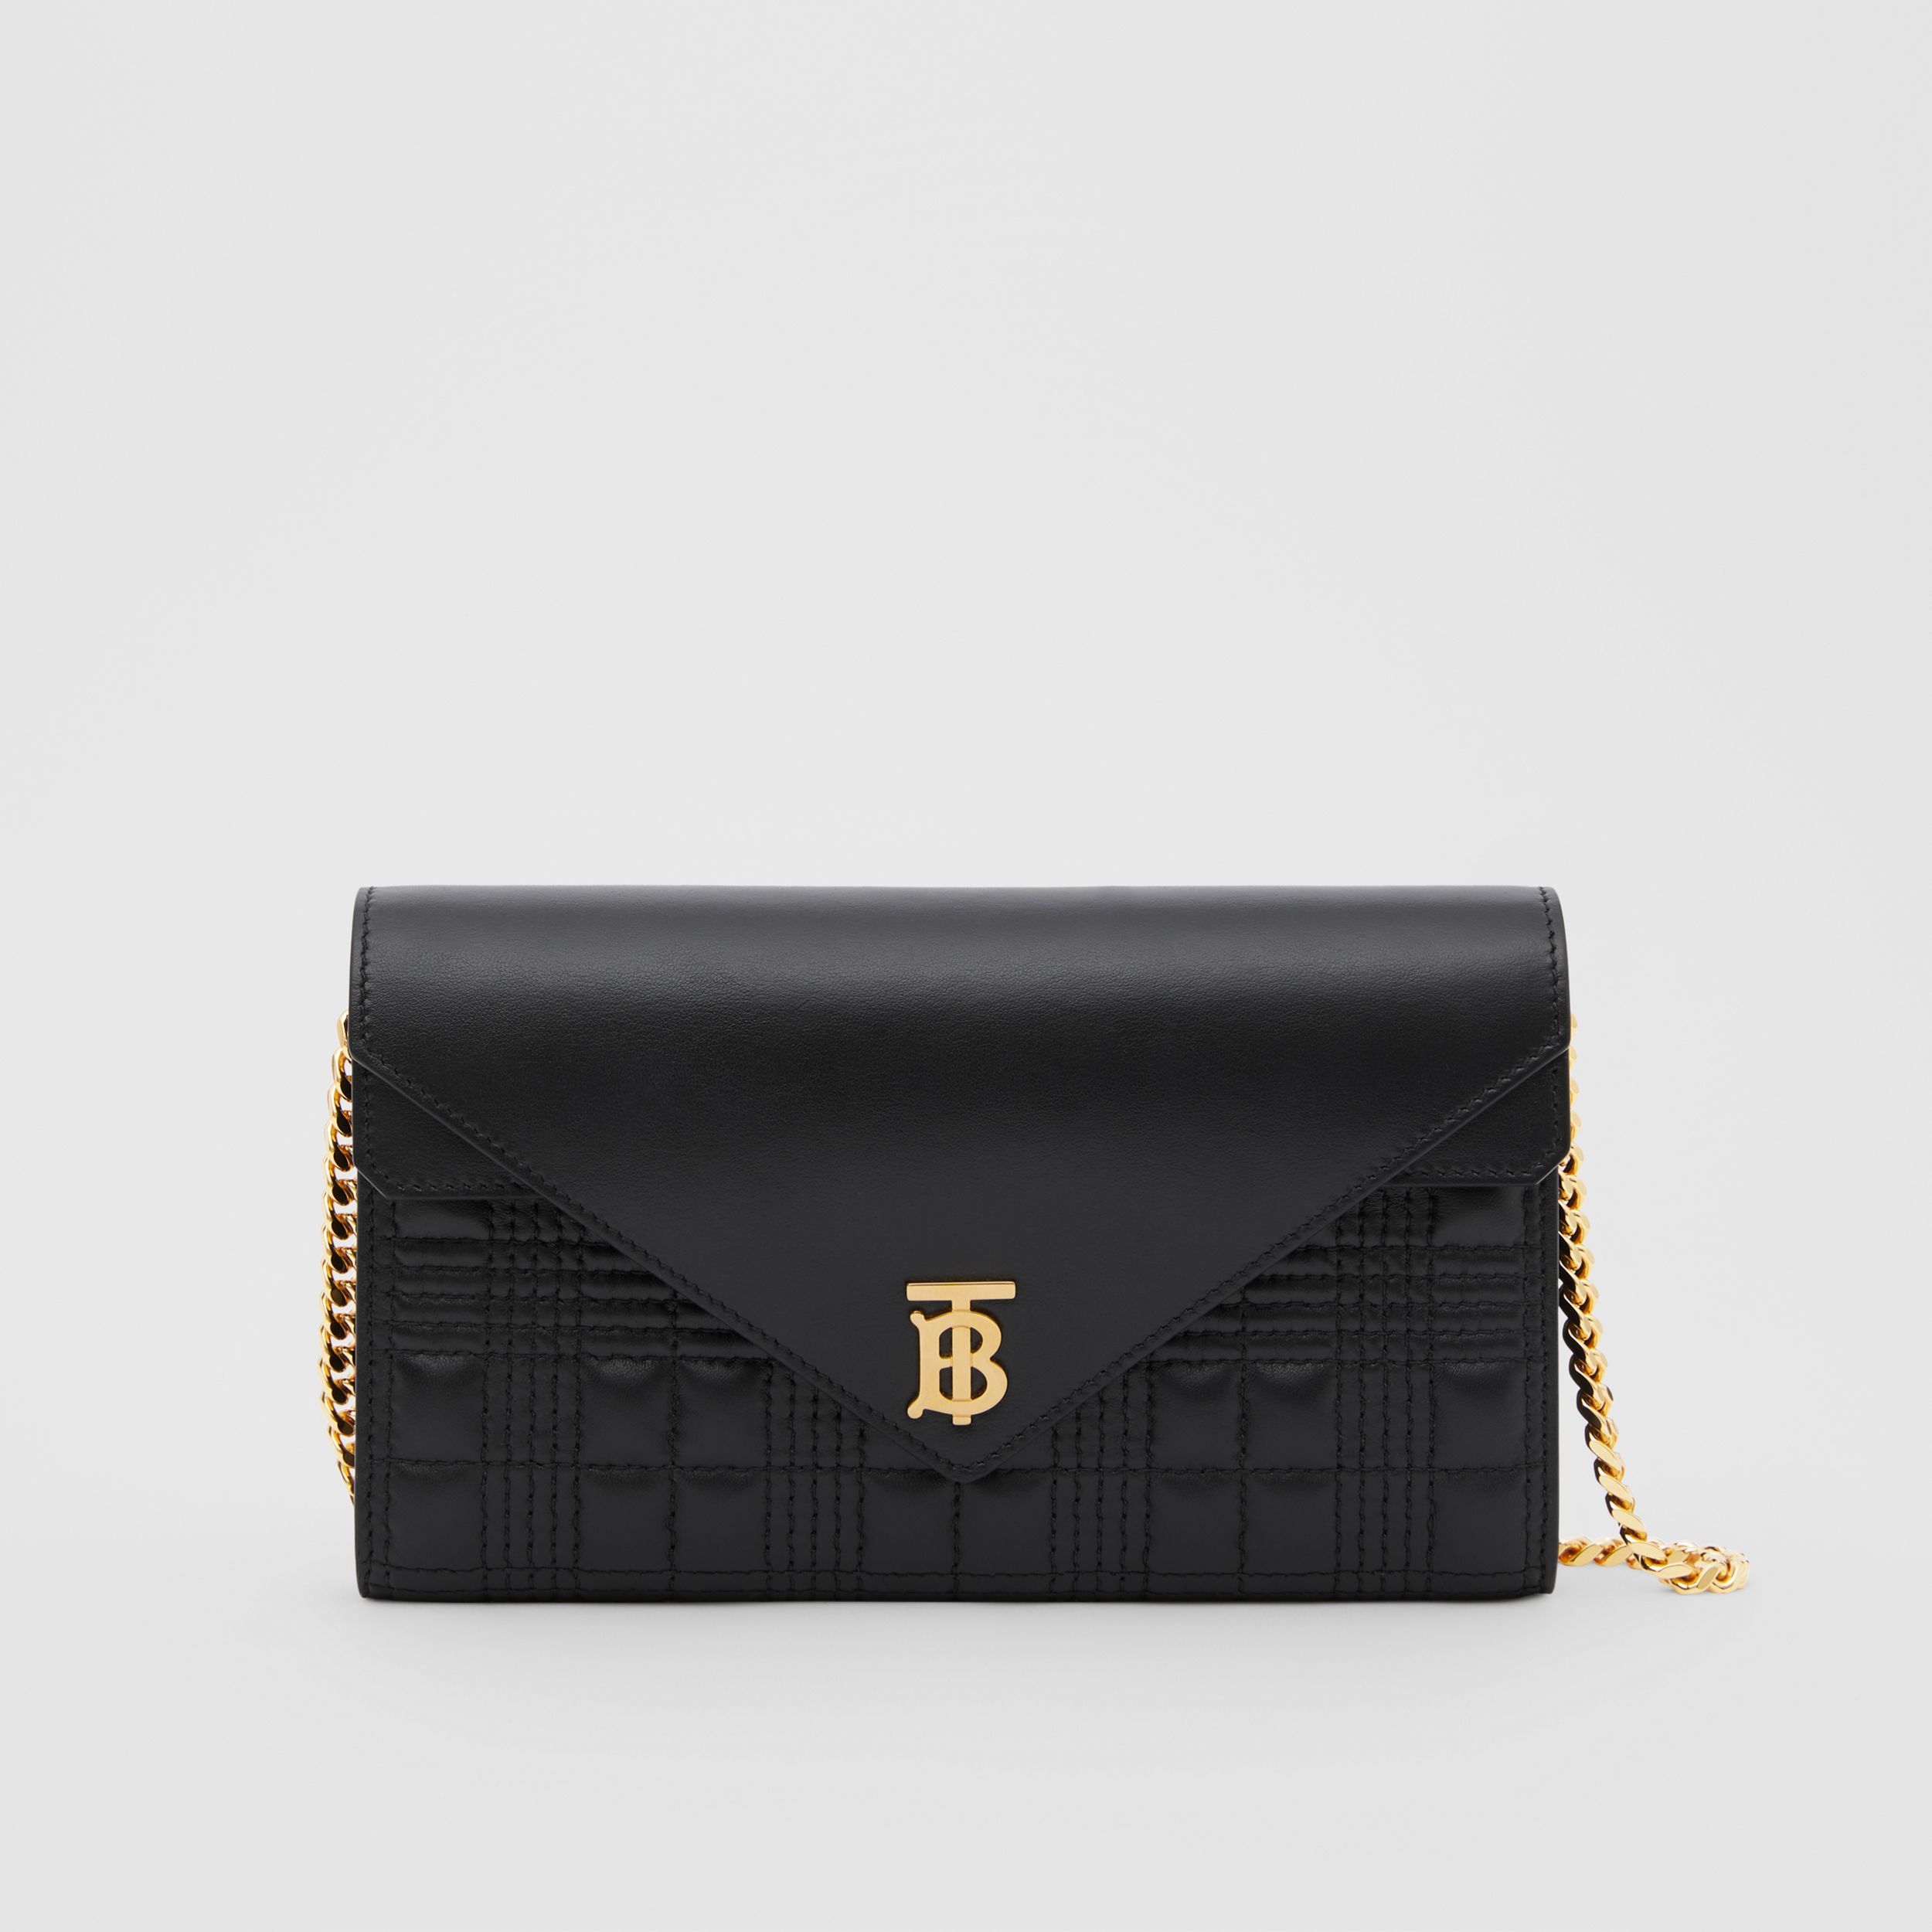 Quilted Lambskin Wallet with Detachable Chain Strap in Black - Women | Burberry - 1